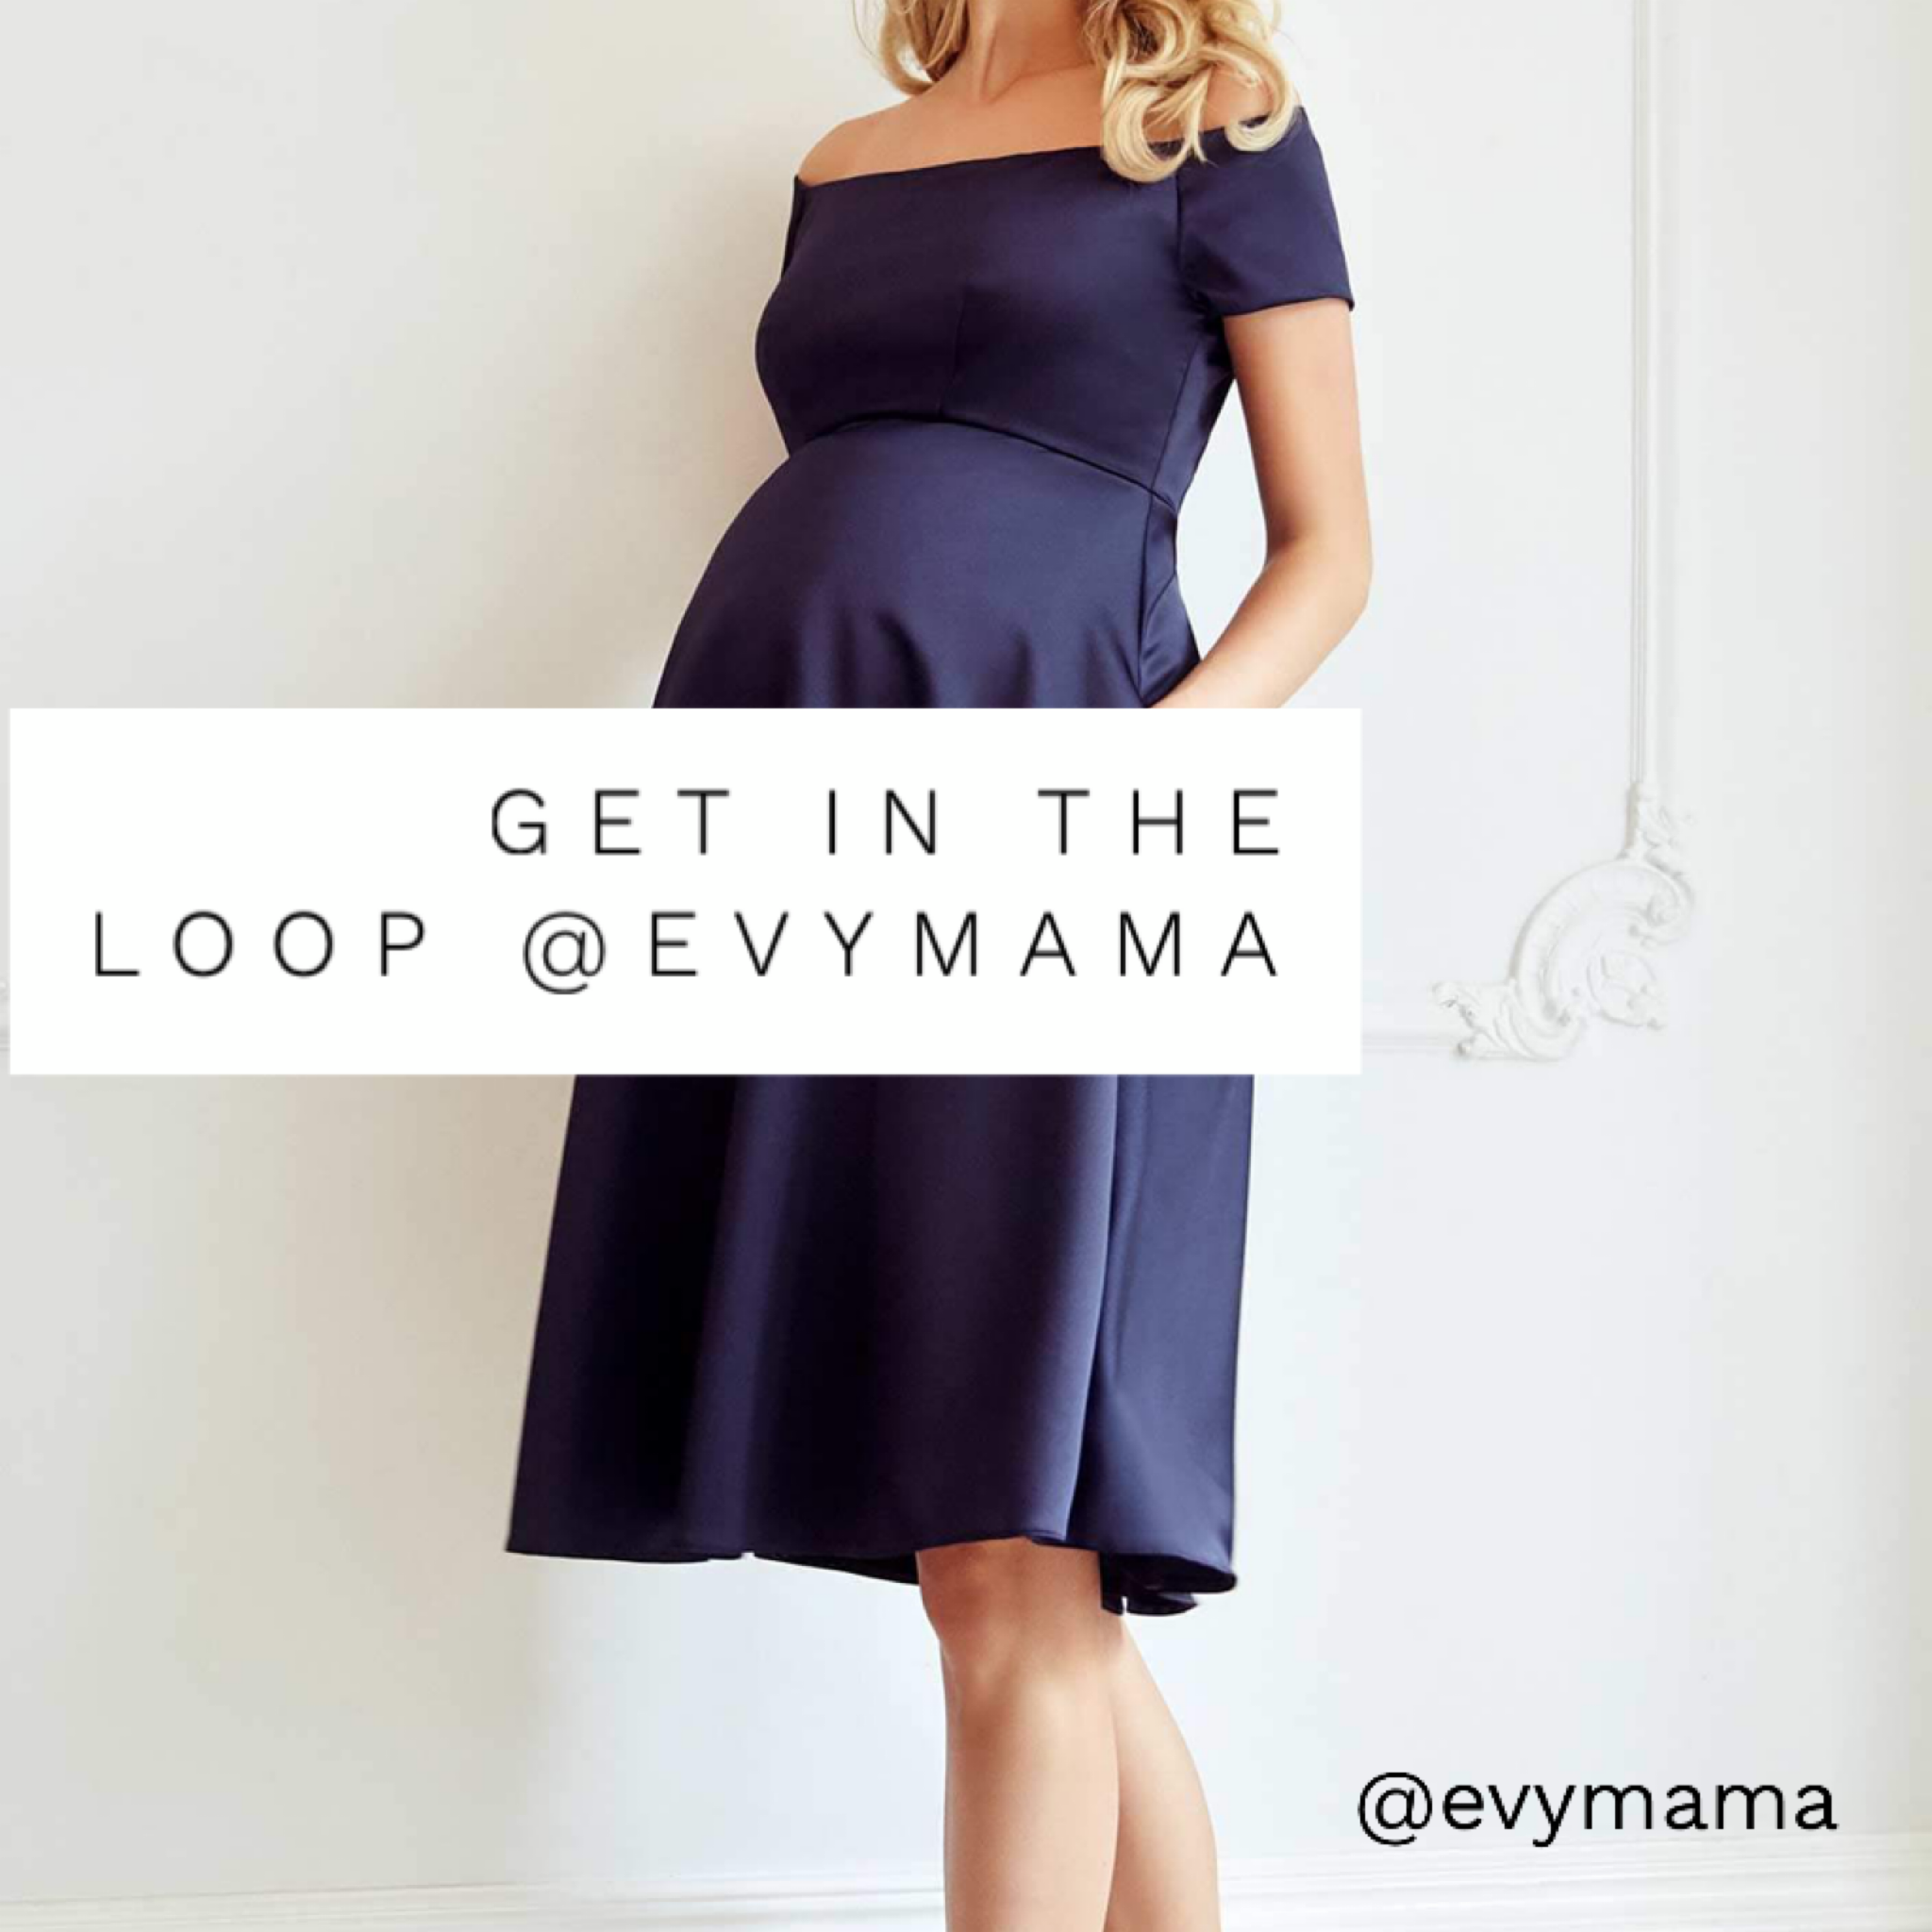 LOOP consignment maternity wear at Evymama